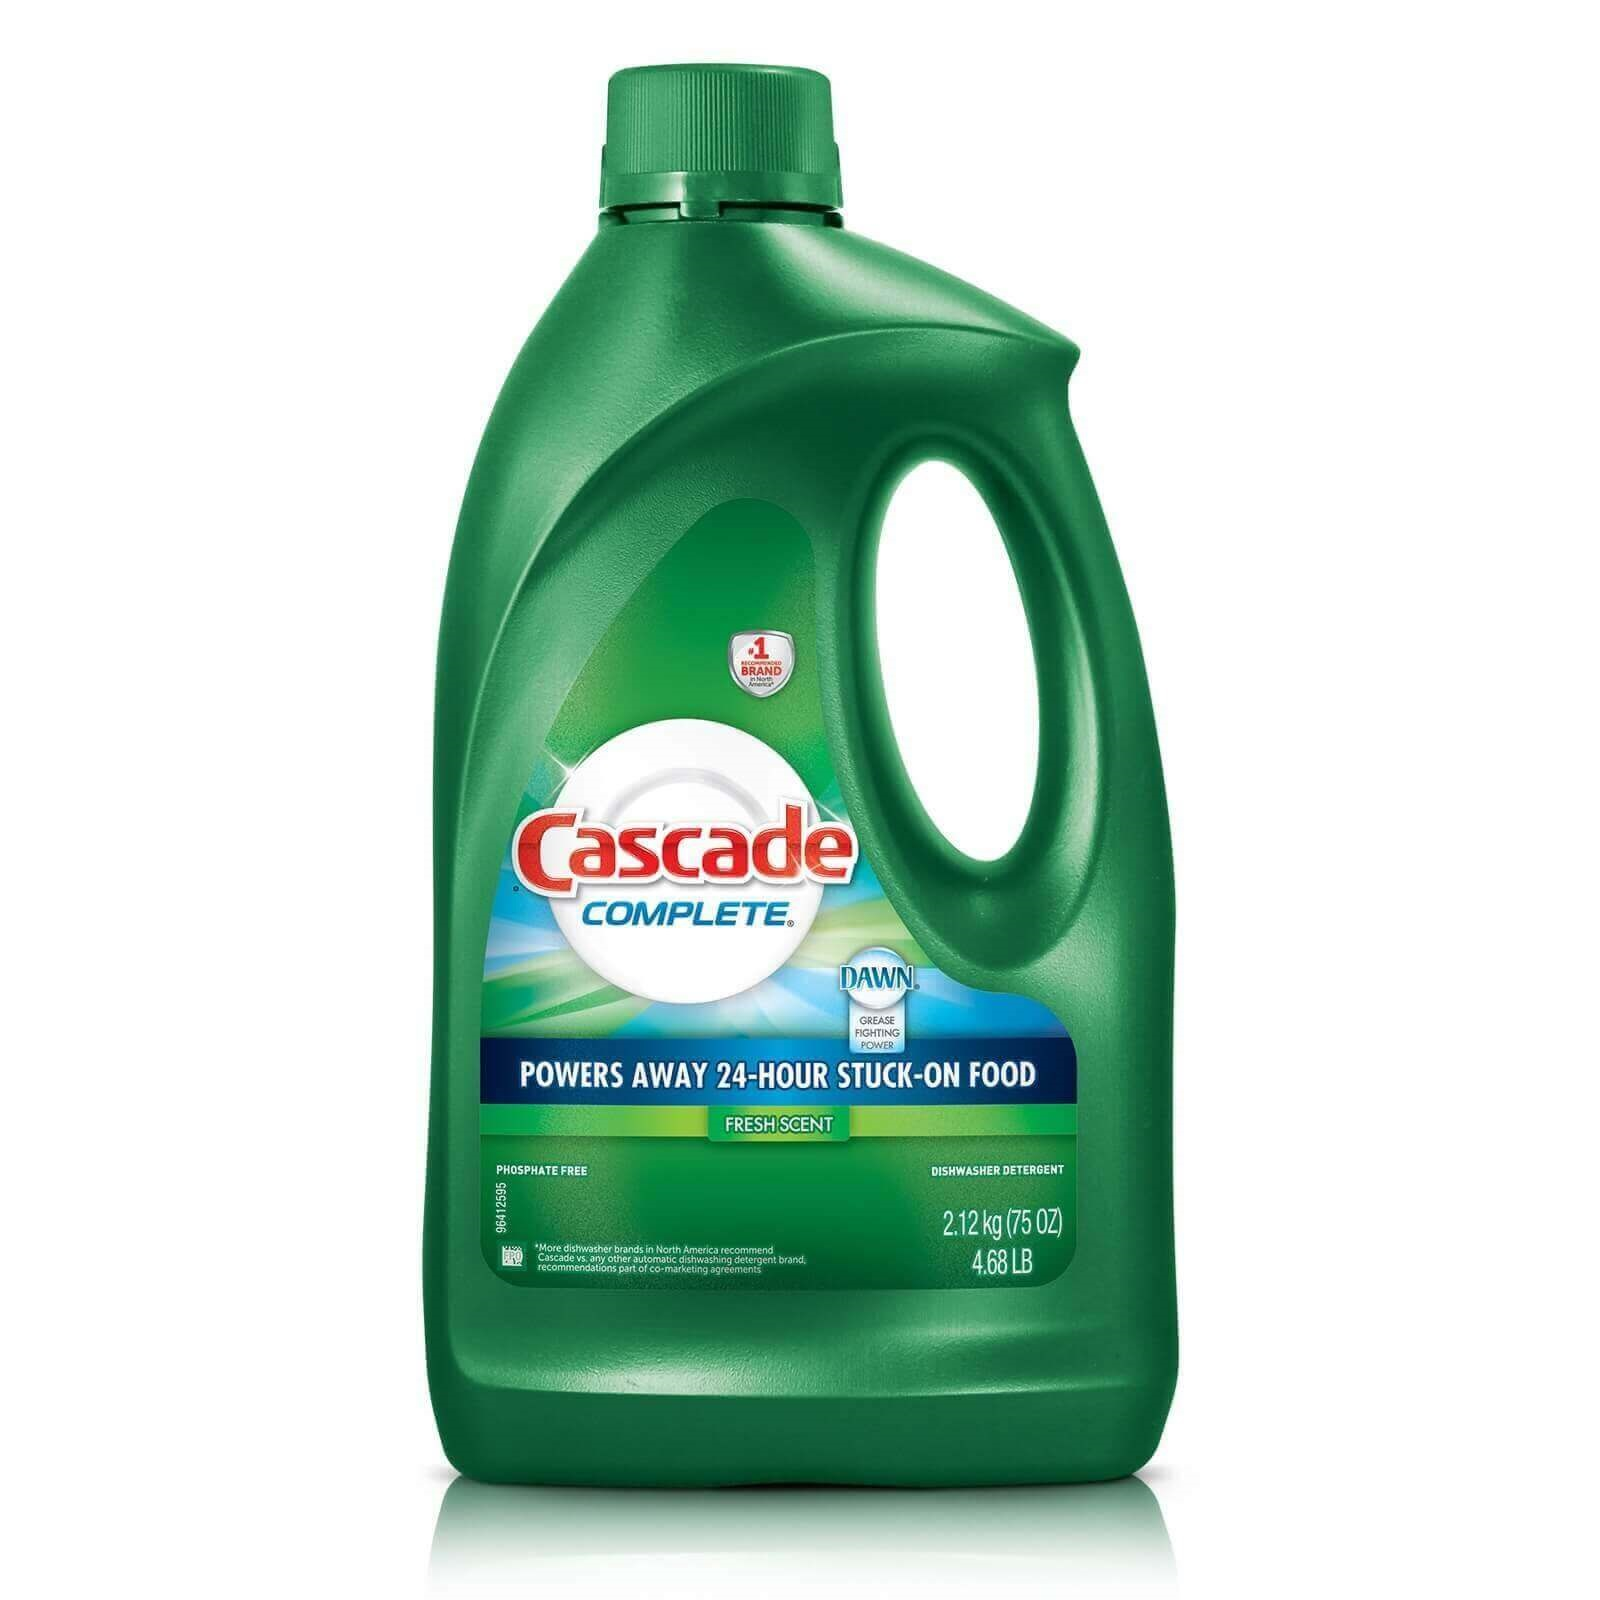 Cascade Platinum ActionPacs Dishwasher Detergent with the Power of Clorox, Fresh, 30 count. Add to Cart. in your cart. 13 dollars and 97 cents $ 13 before using or consuming a product. For additional information about a product, please contact the manufacturer. gimesbasu.gq assumes no liability for inaccuracies or.